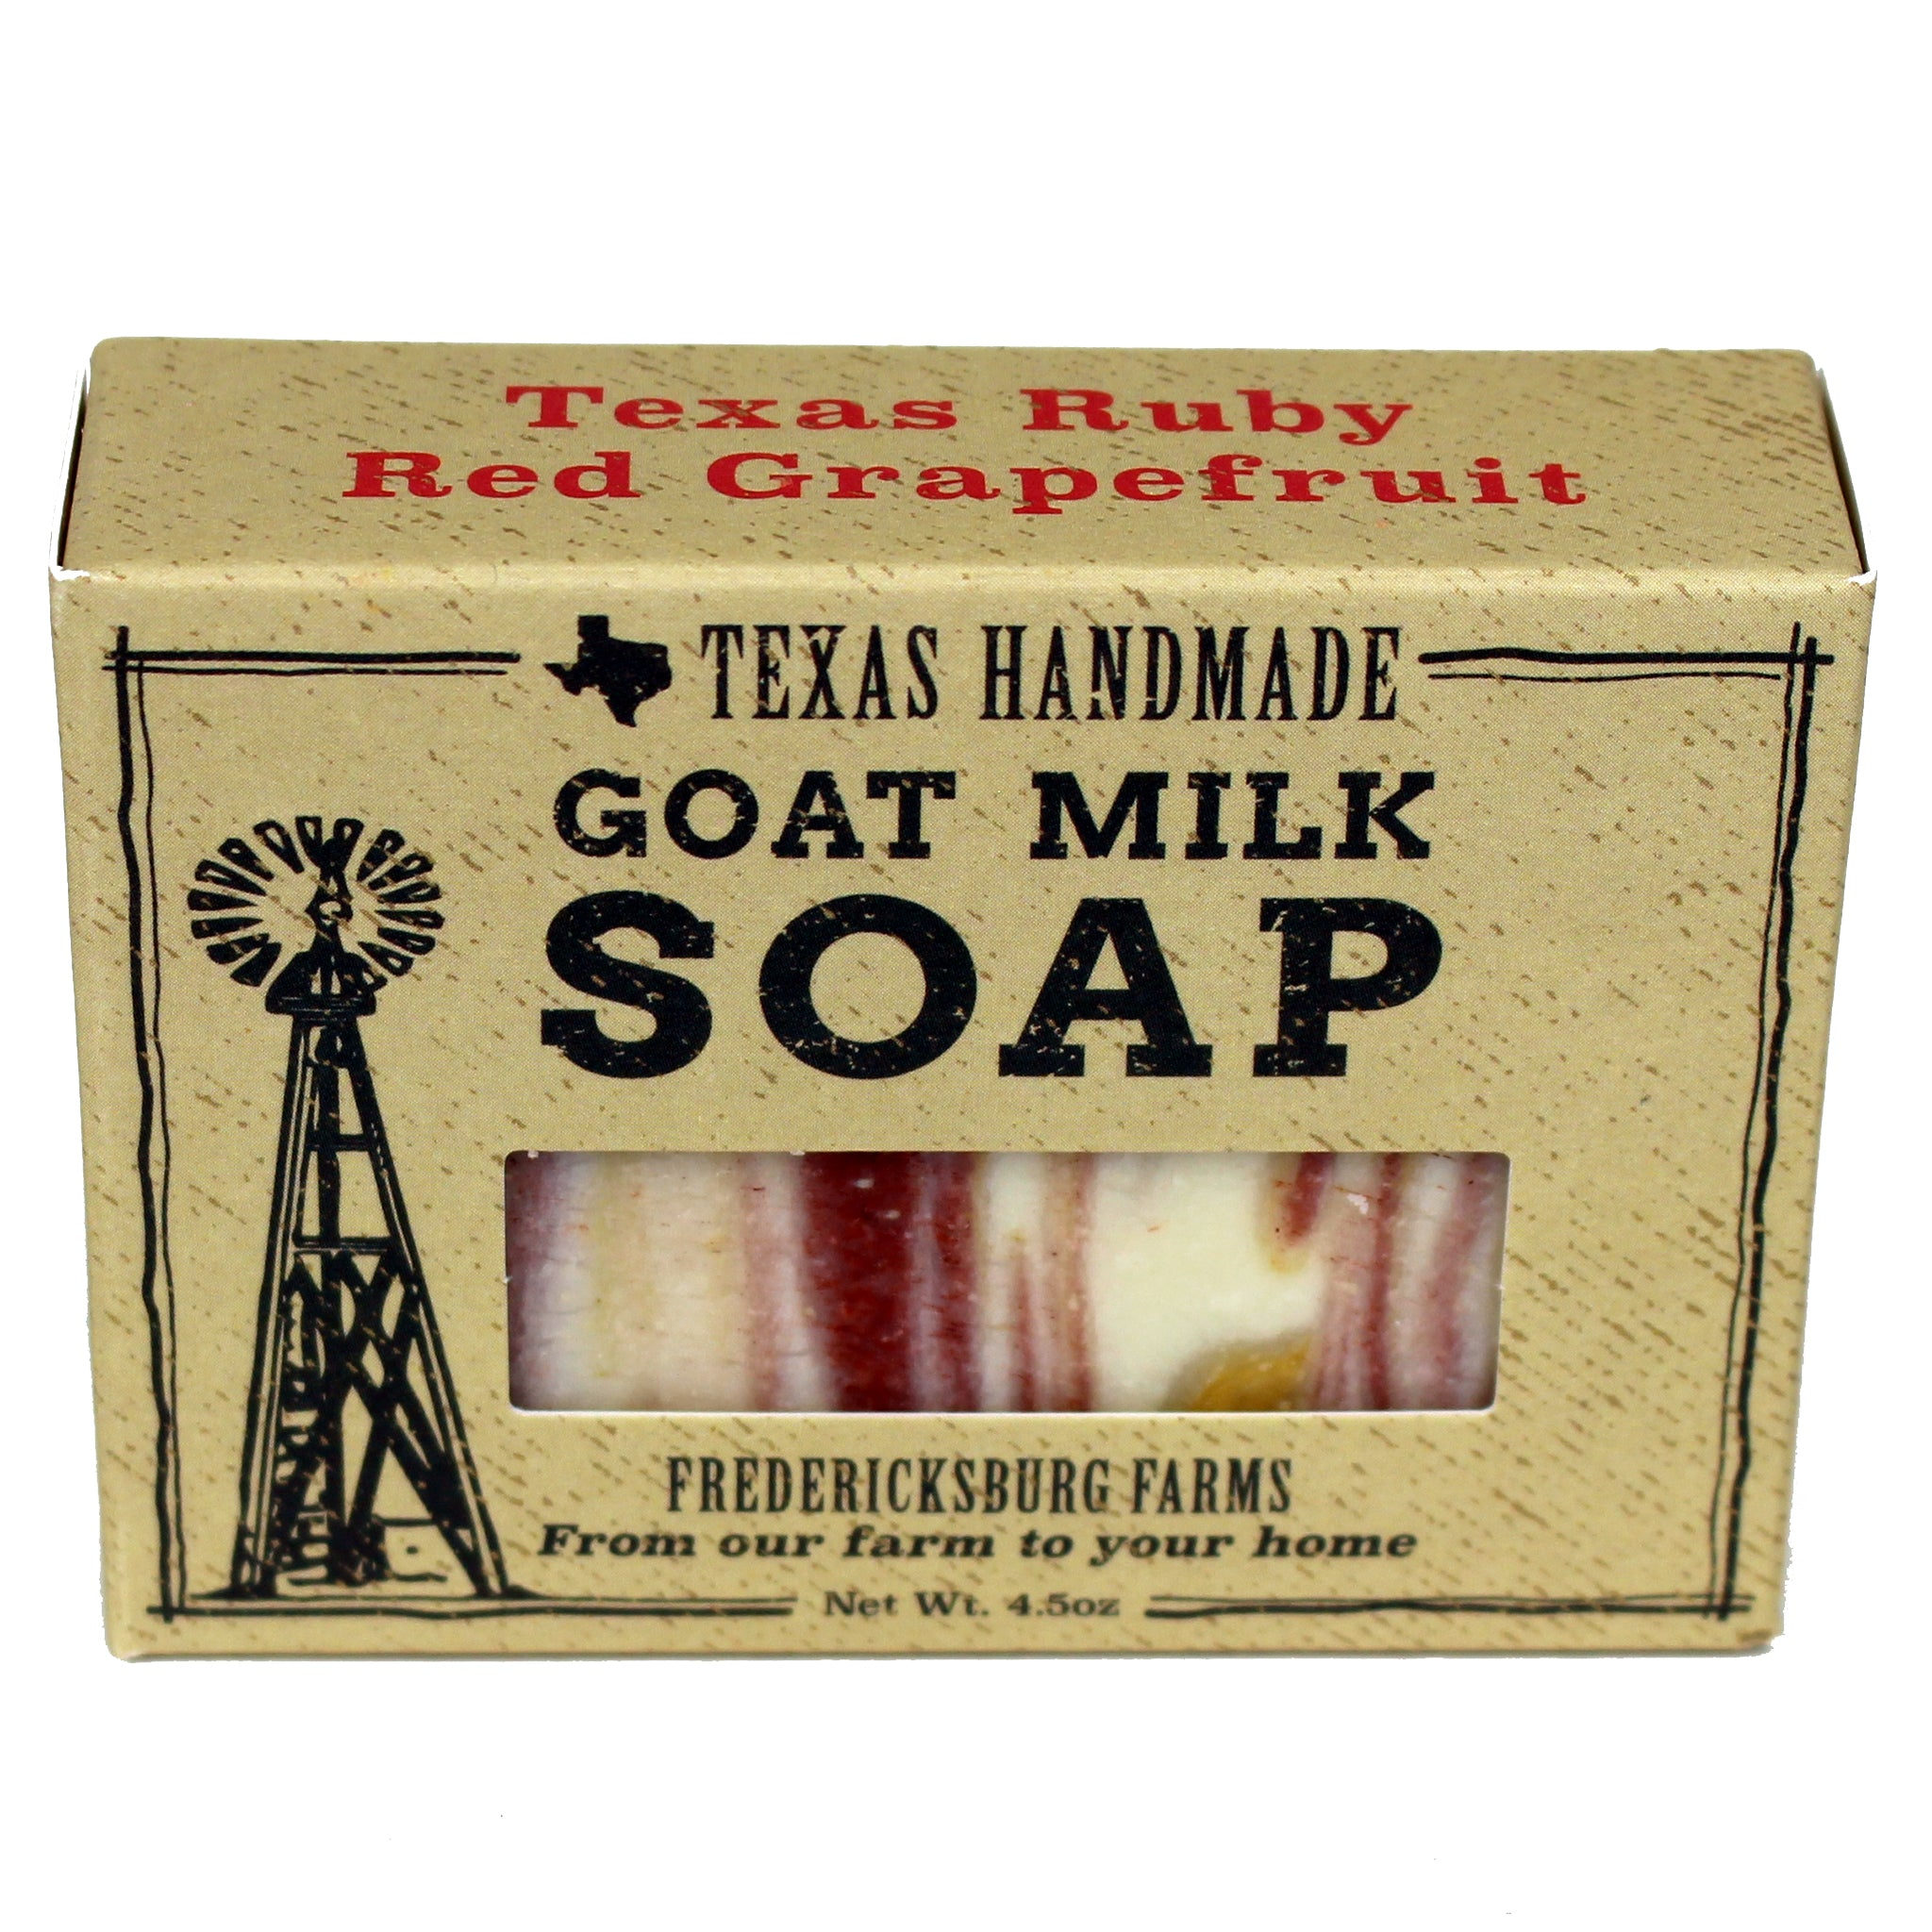 Texas Ruby Red Grapefruit Goat Milk Soap